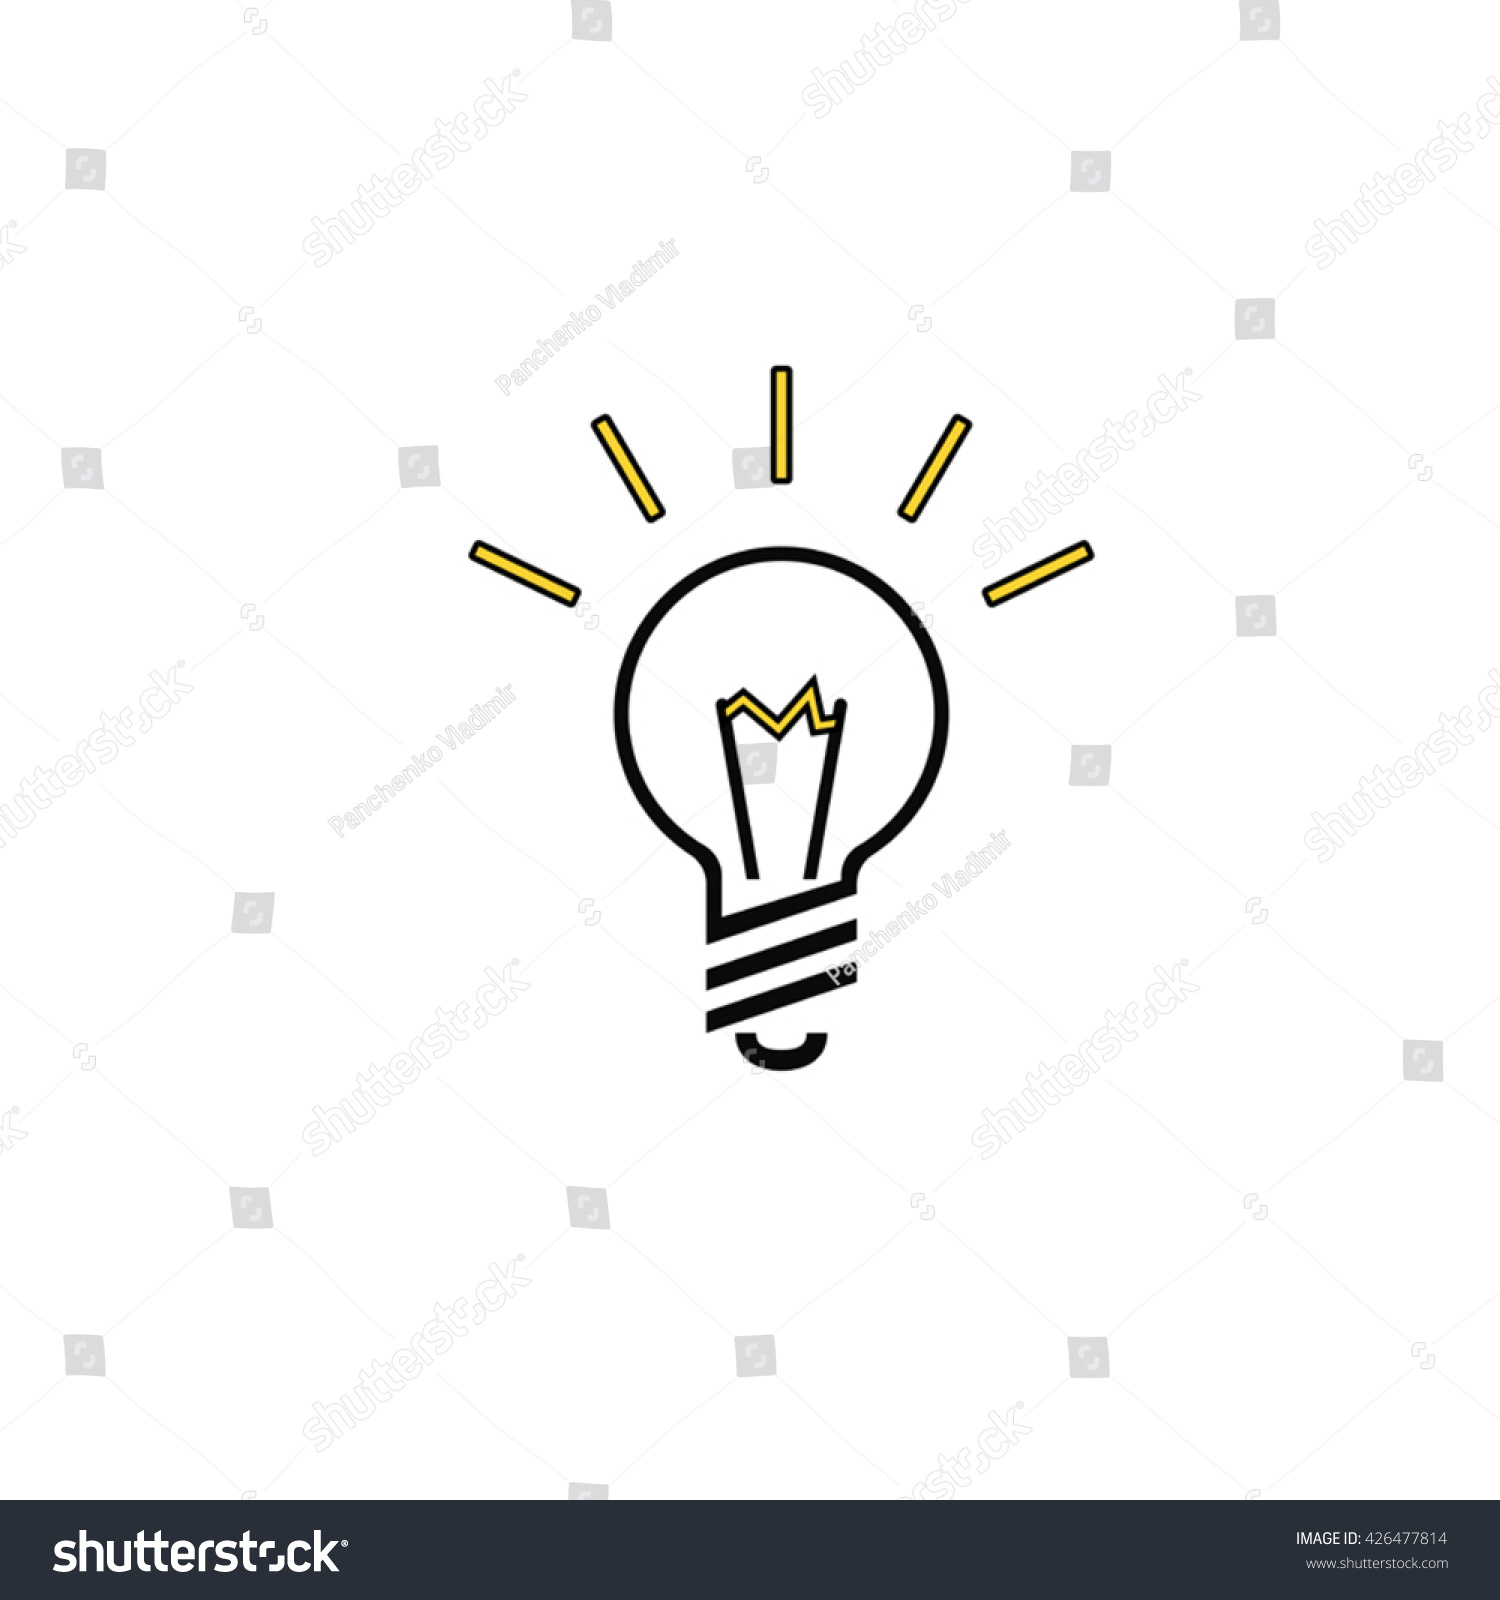 Lightbulb Vector Eps 10 Icon Led Stock Vector 426477814 - Shutterstock